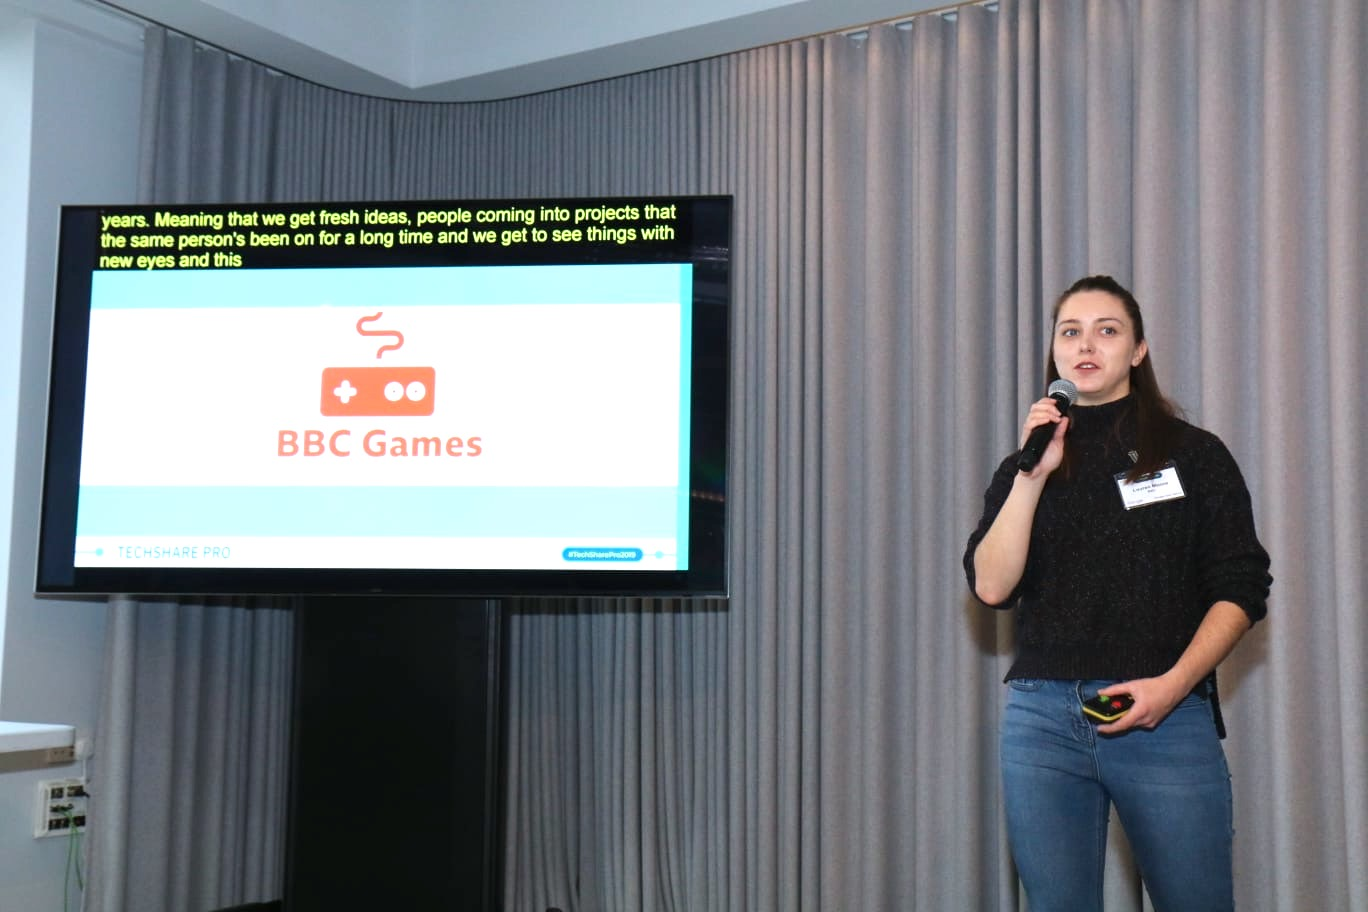 Lauren Moore on stage at TechShare Pro speaking about BBC Games